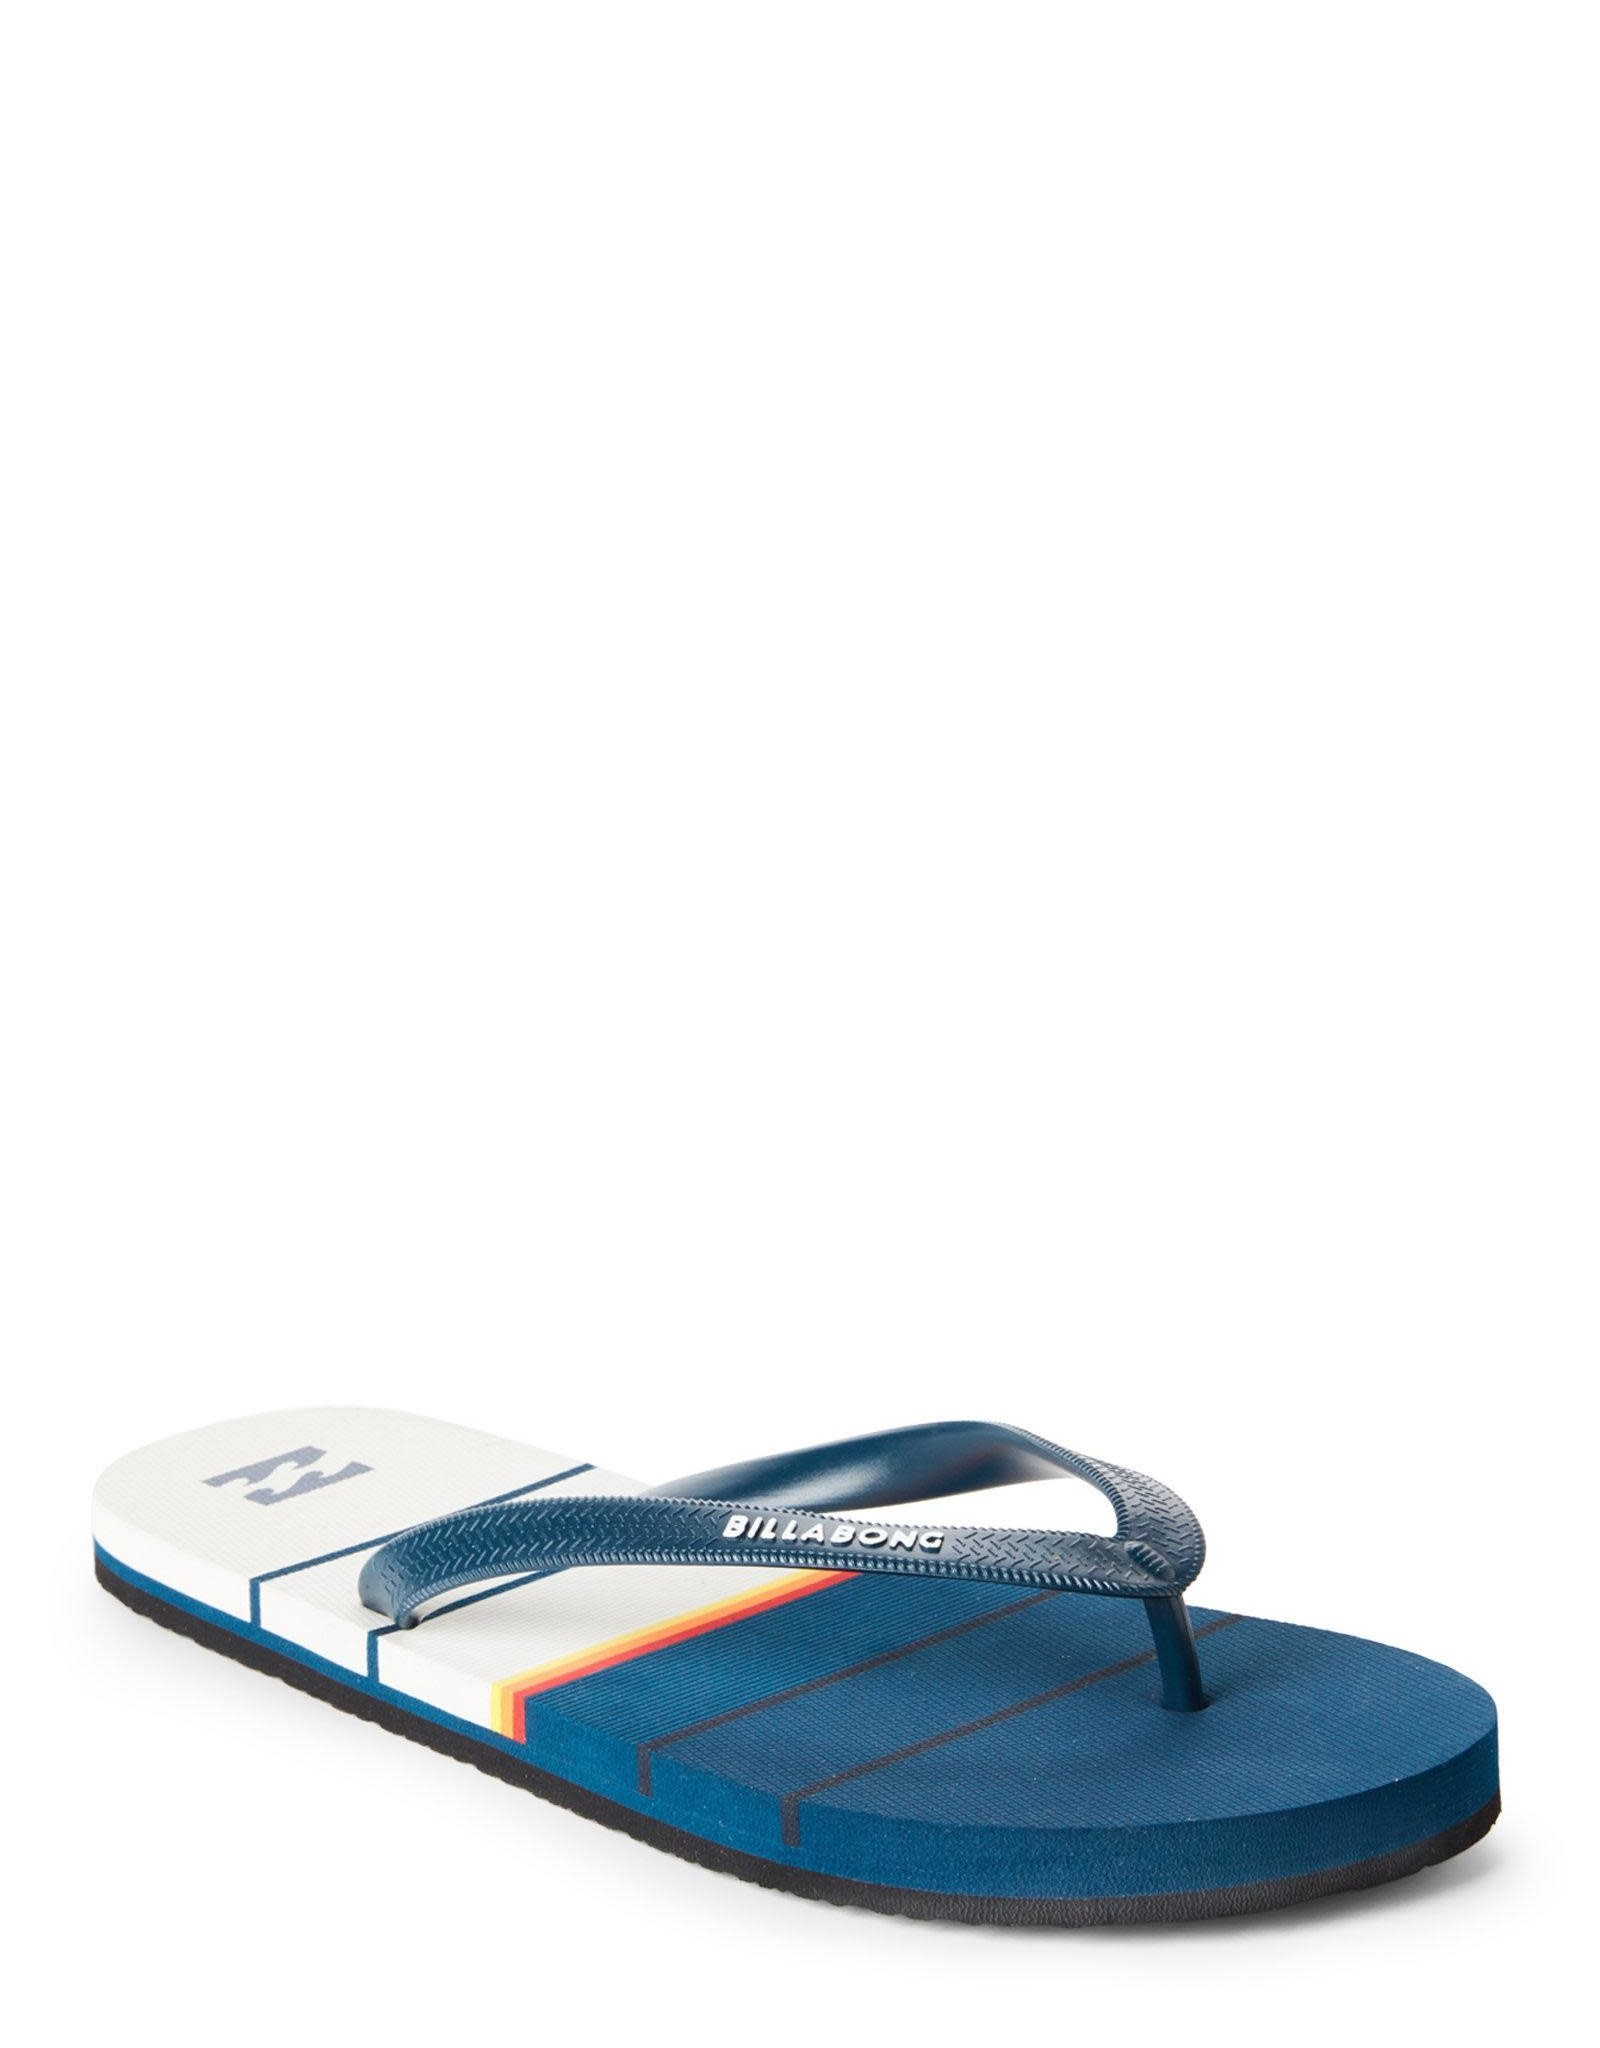 billabong Billabong - sandale spin thong